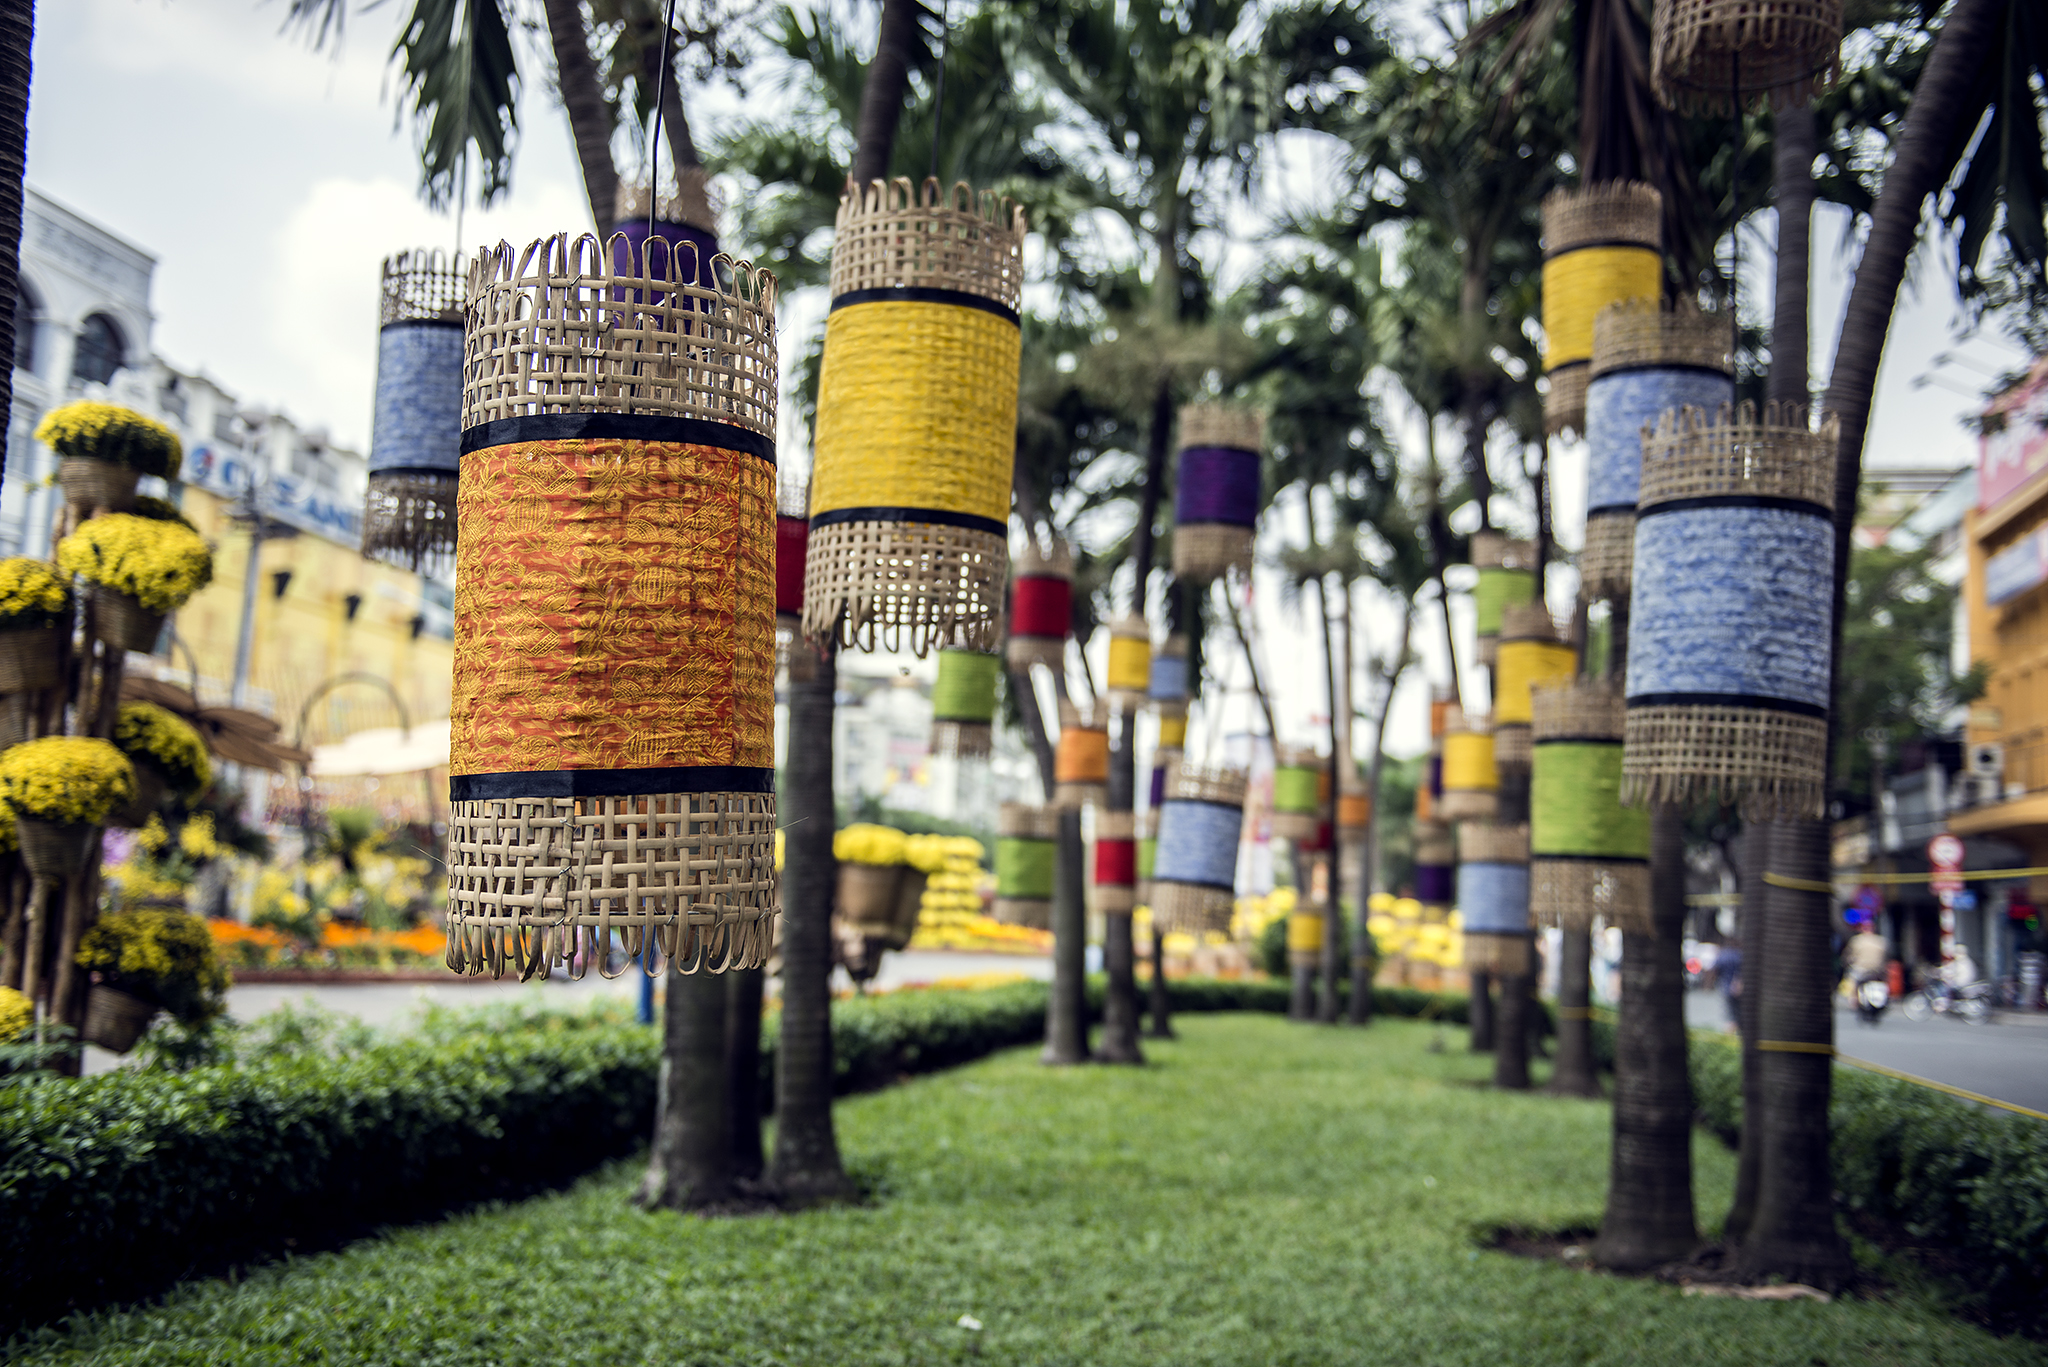 Yellow, orange and blue lanterns hanging from palm trees